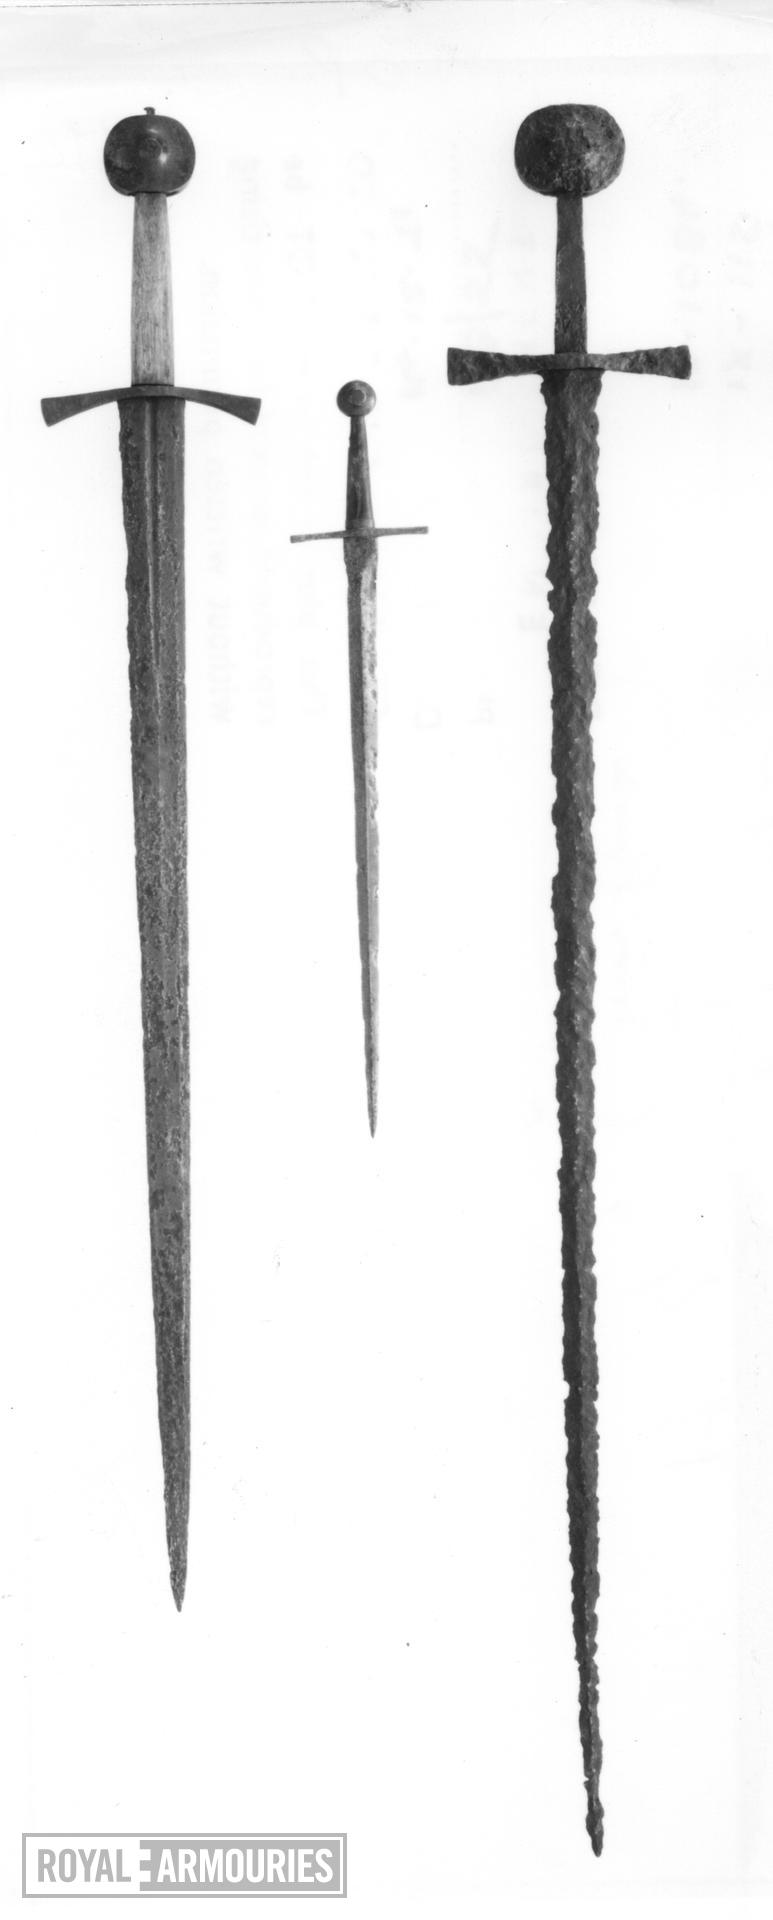 Sword Sword, purpotedly associated with a 'tomb of a Count of Treves'.